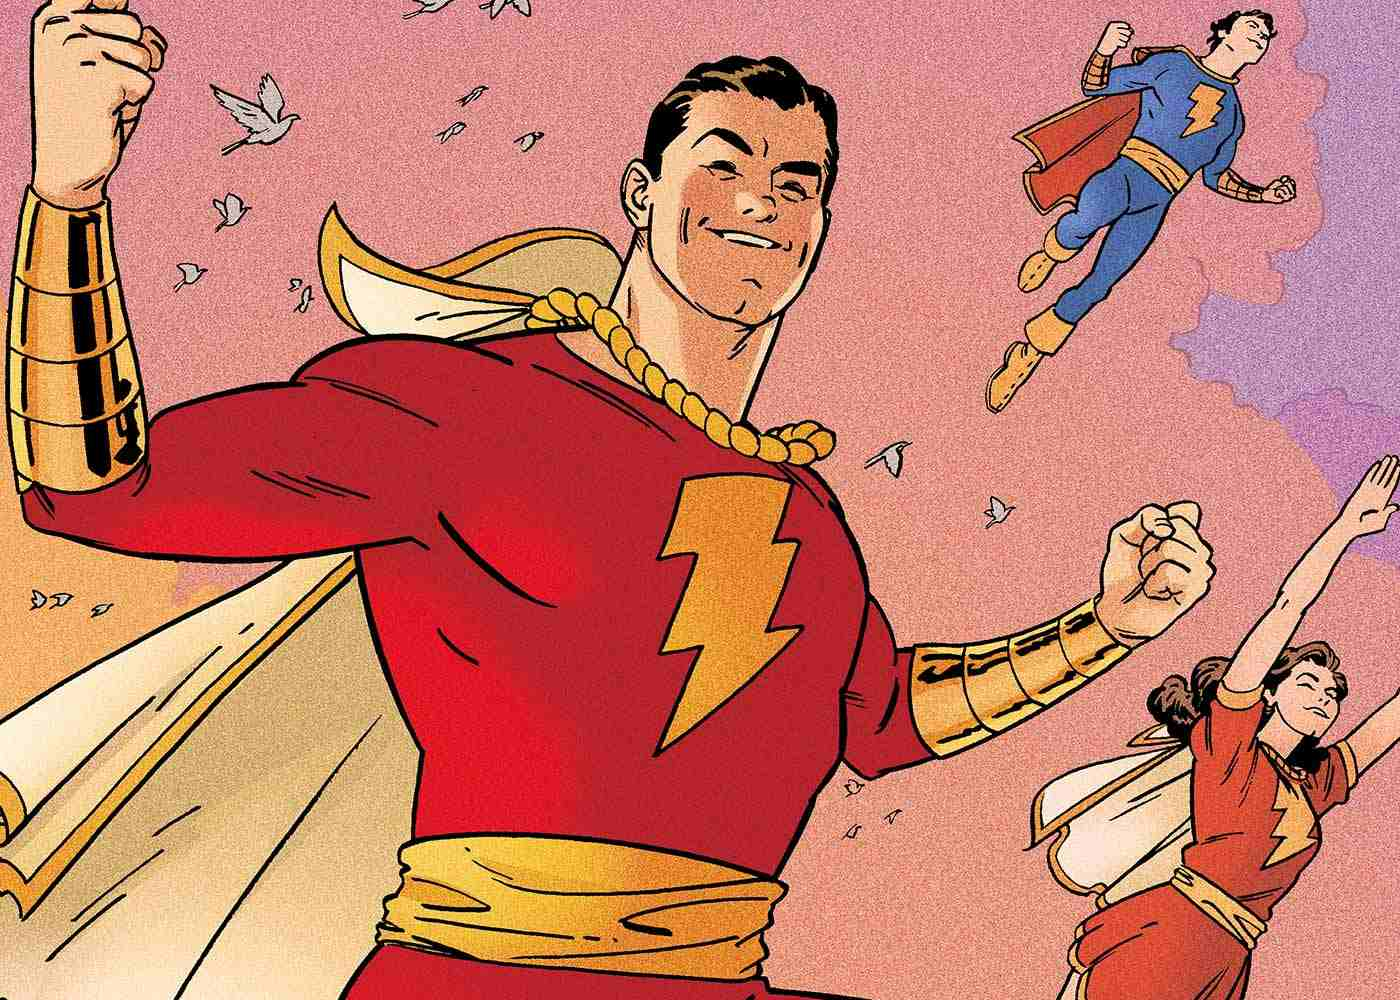 Shazam!: Zachary Levi Shares First Official Look at Captain Marvel